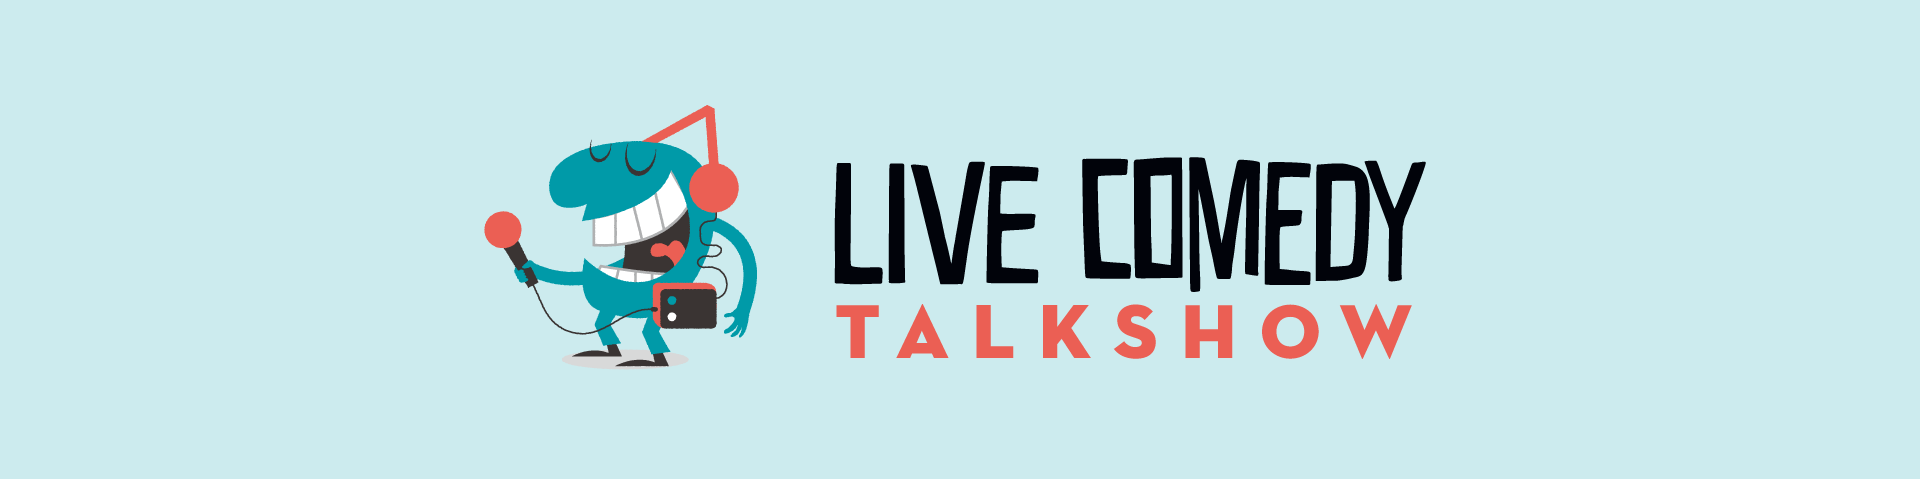 Live Comedy Talkshow